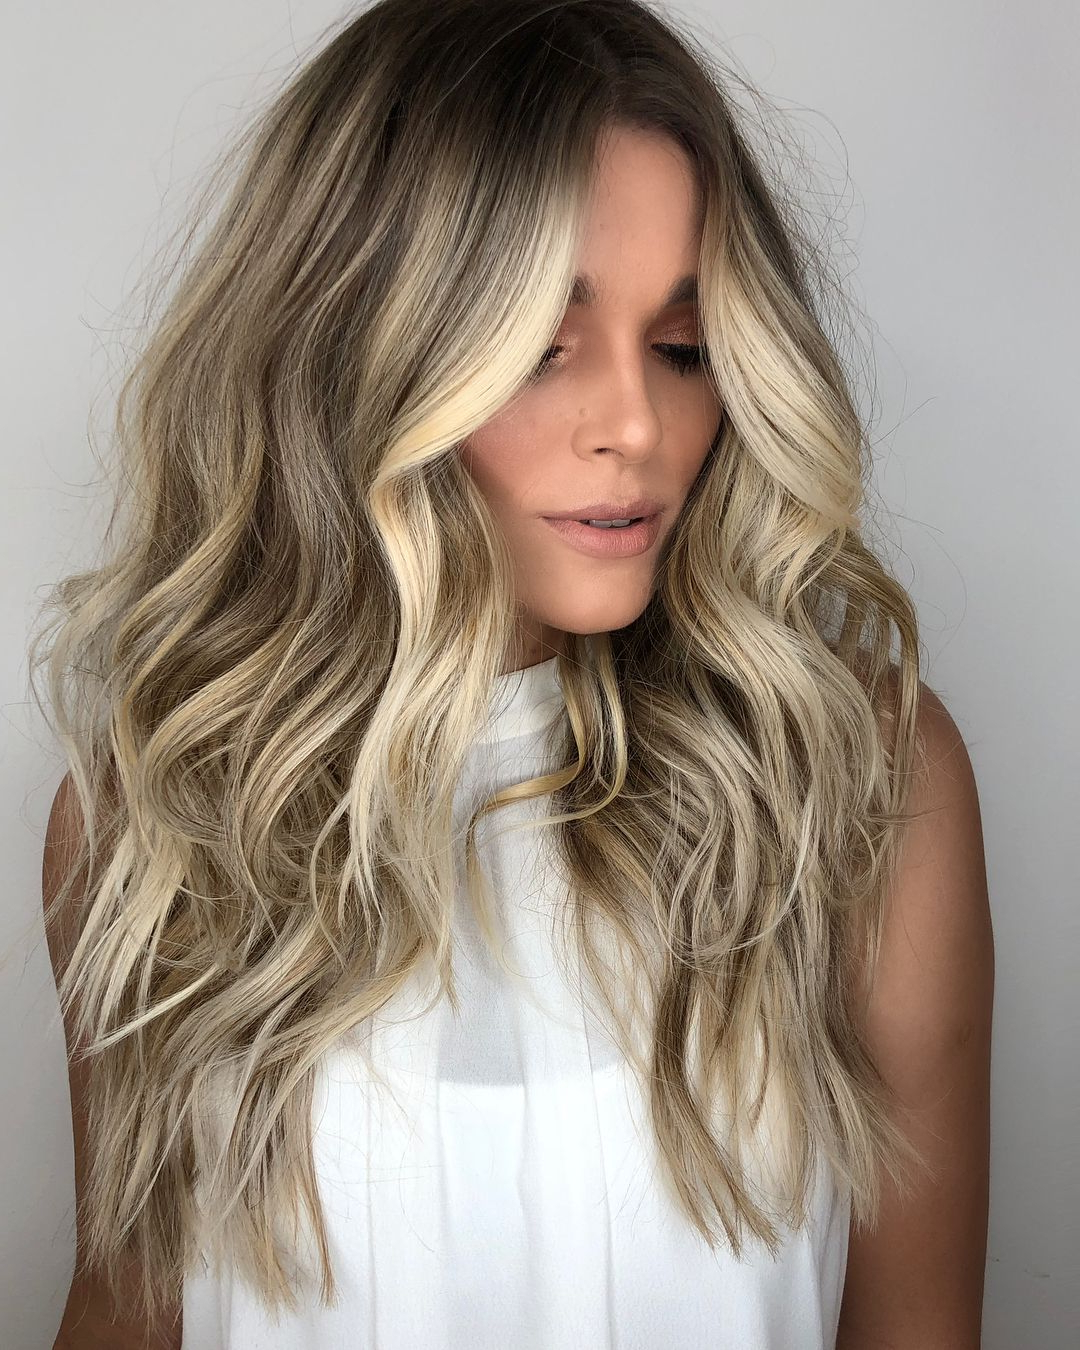 Most Up To Date Long Dark Hairstyles With Blonde Contour Balayage Intended For Blonde Beach Contour® #romeufelipe #equiperomeufelipe #beachcontour (View 3 of 20)